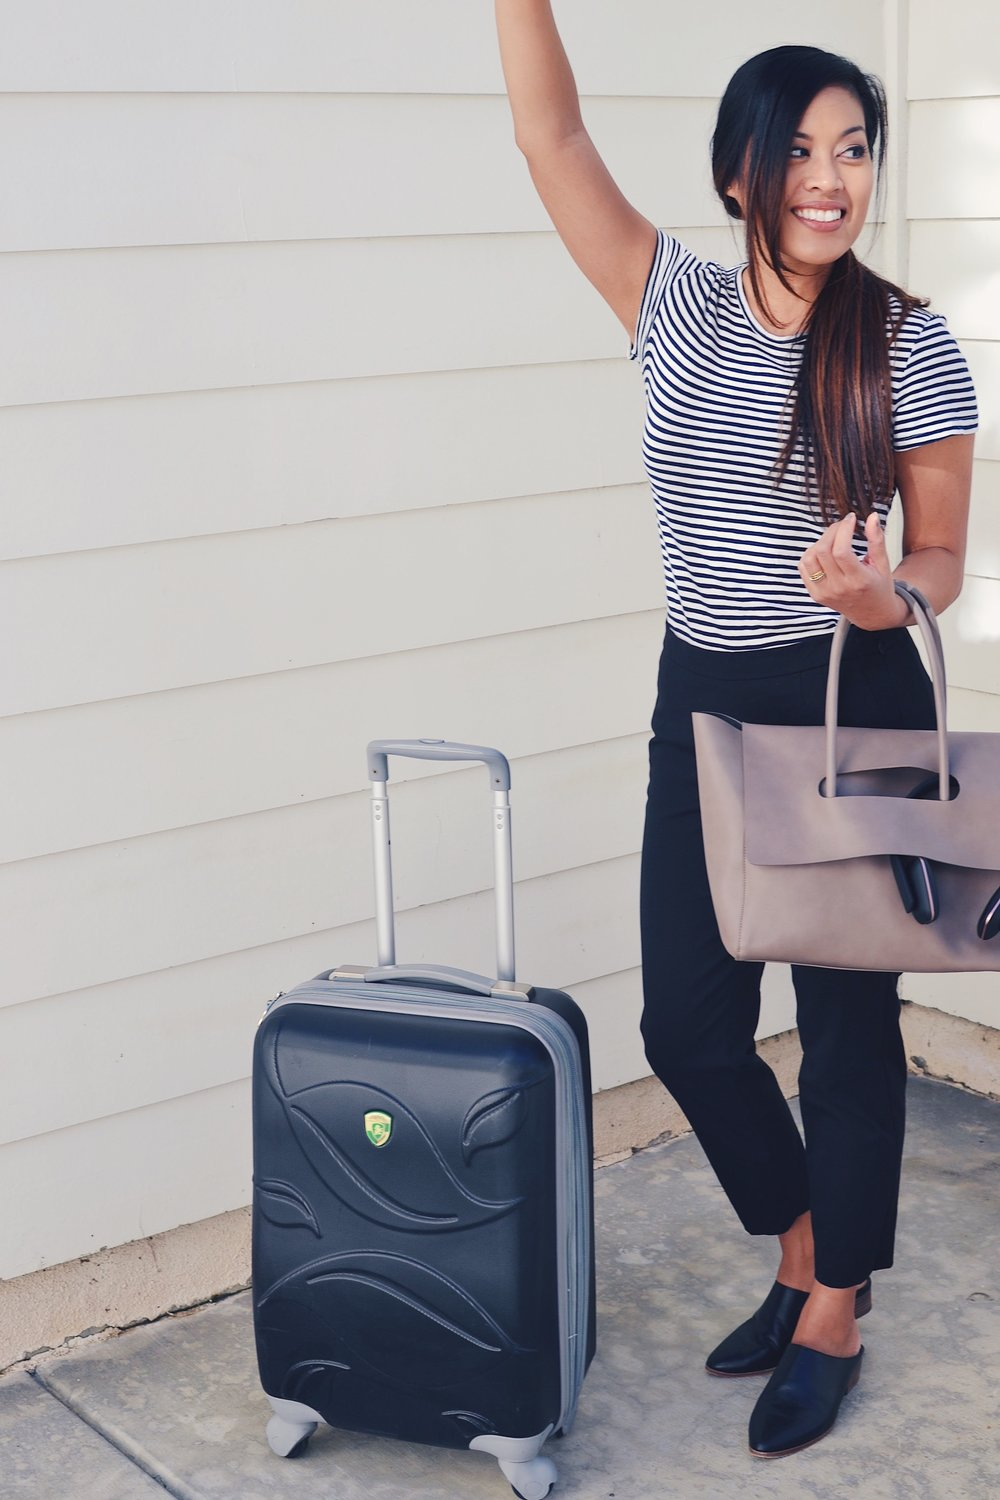 Comfy & classy airport outfit